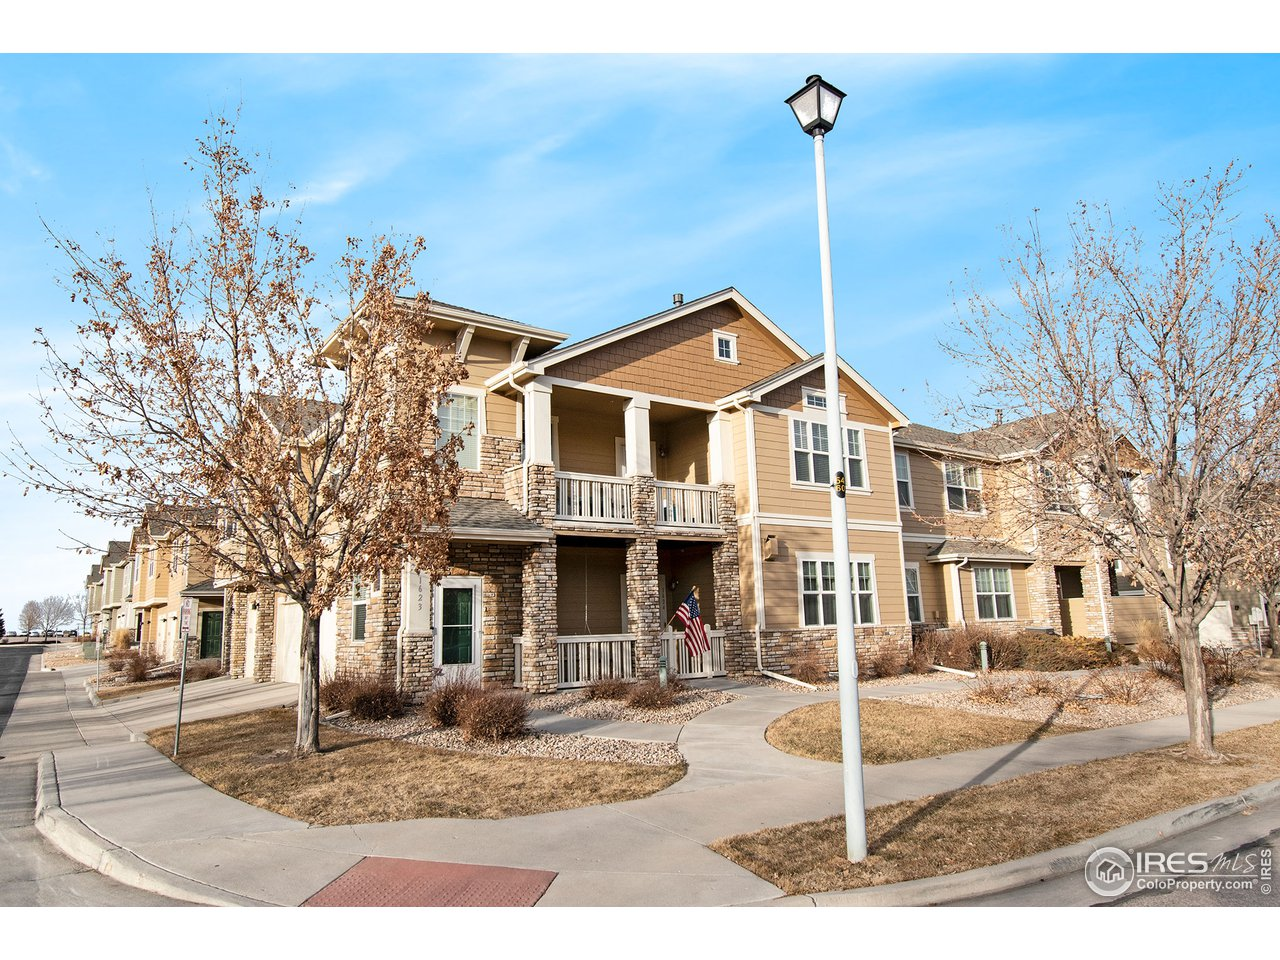 6603 W 3RD ST #1625, GREELEY, CO 80634